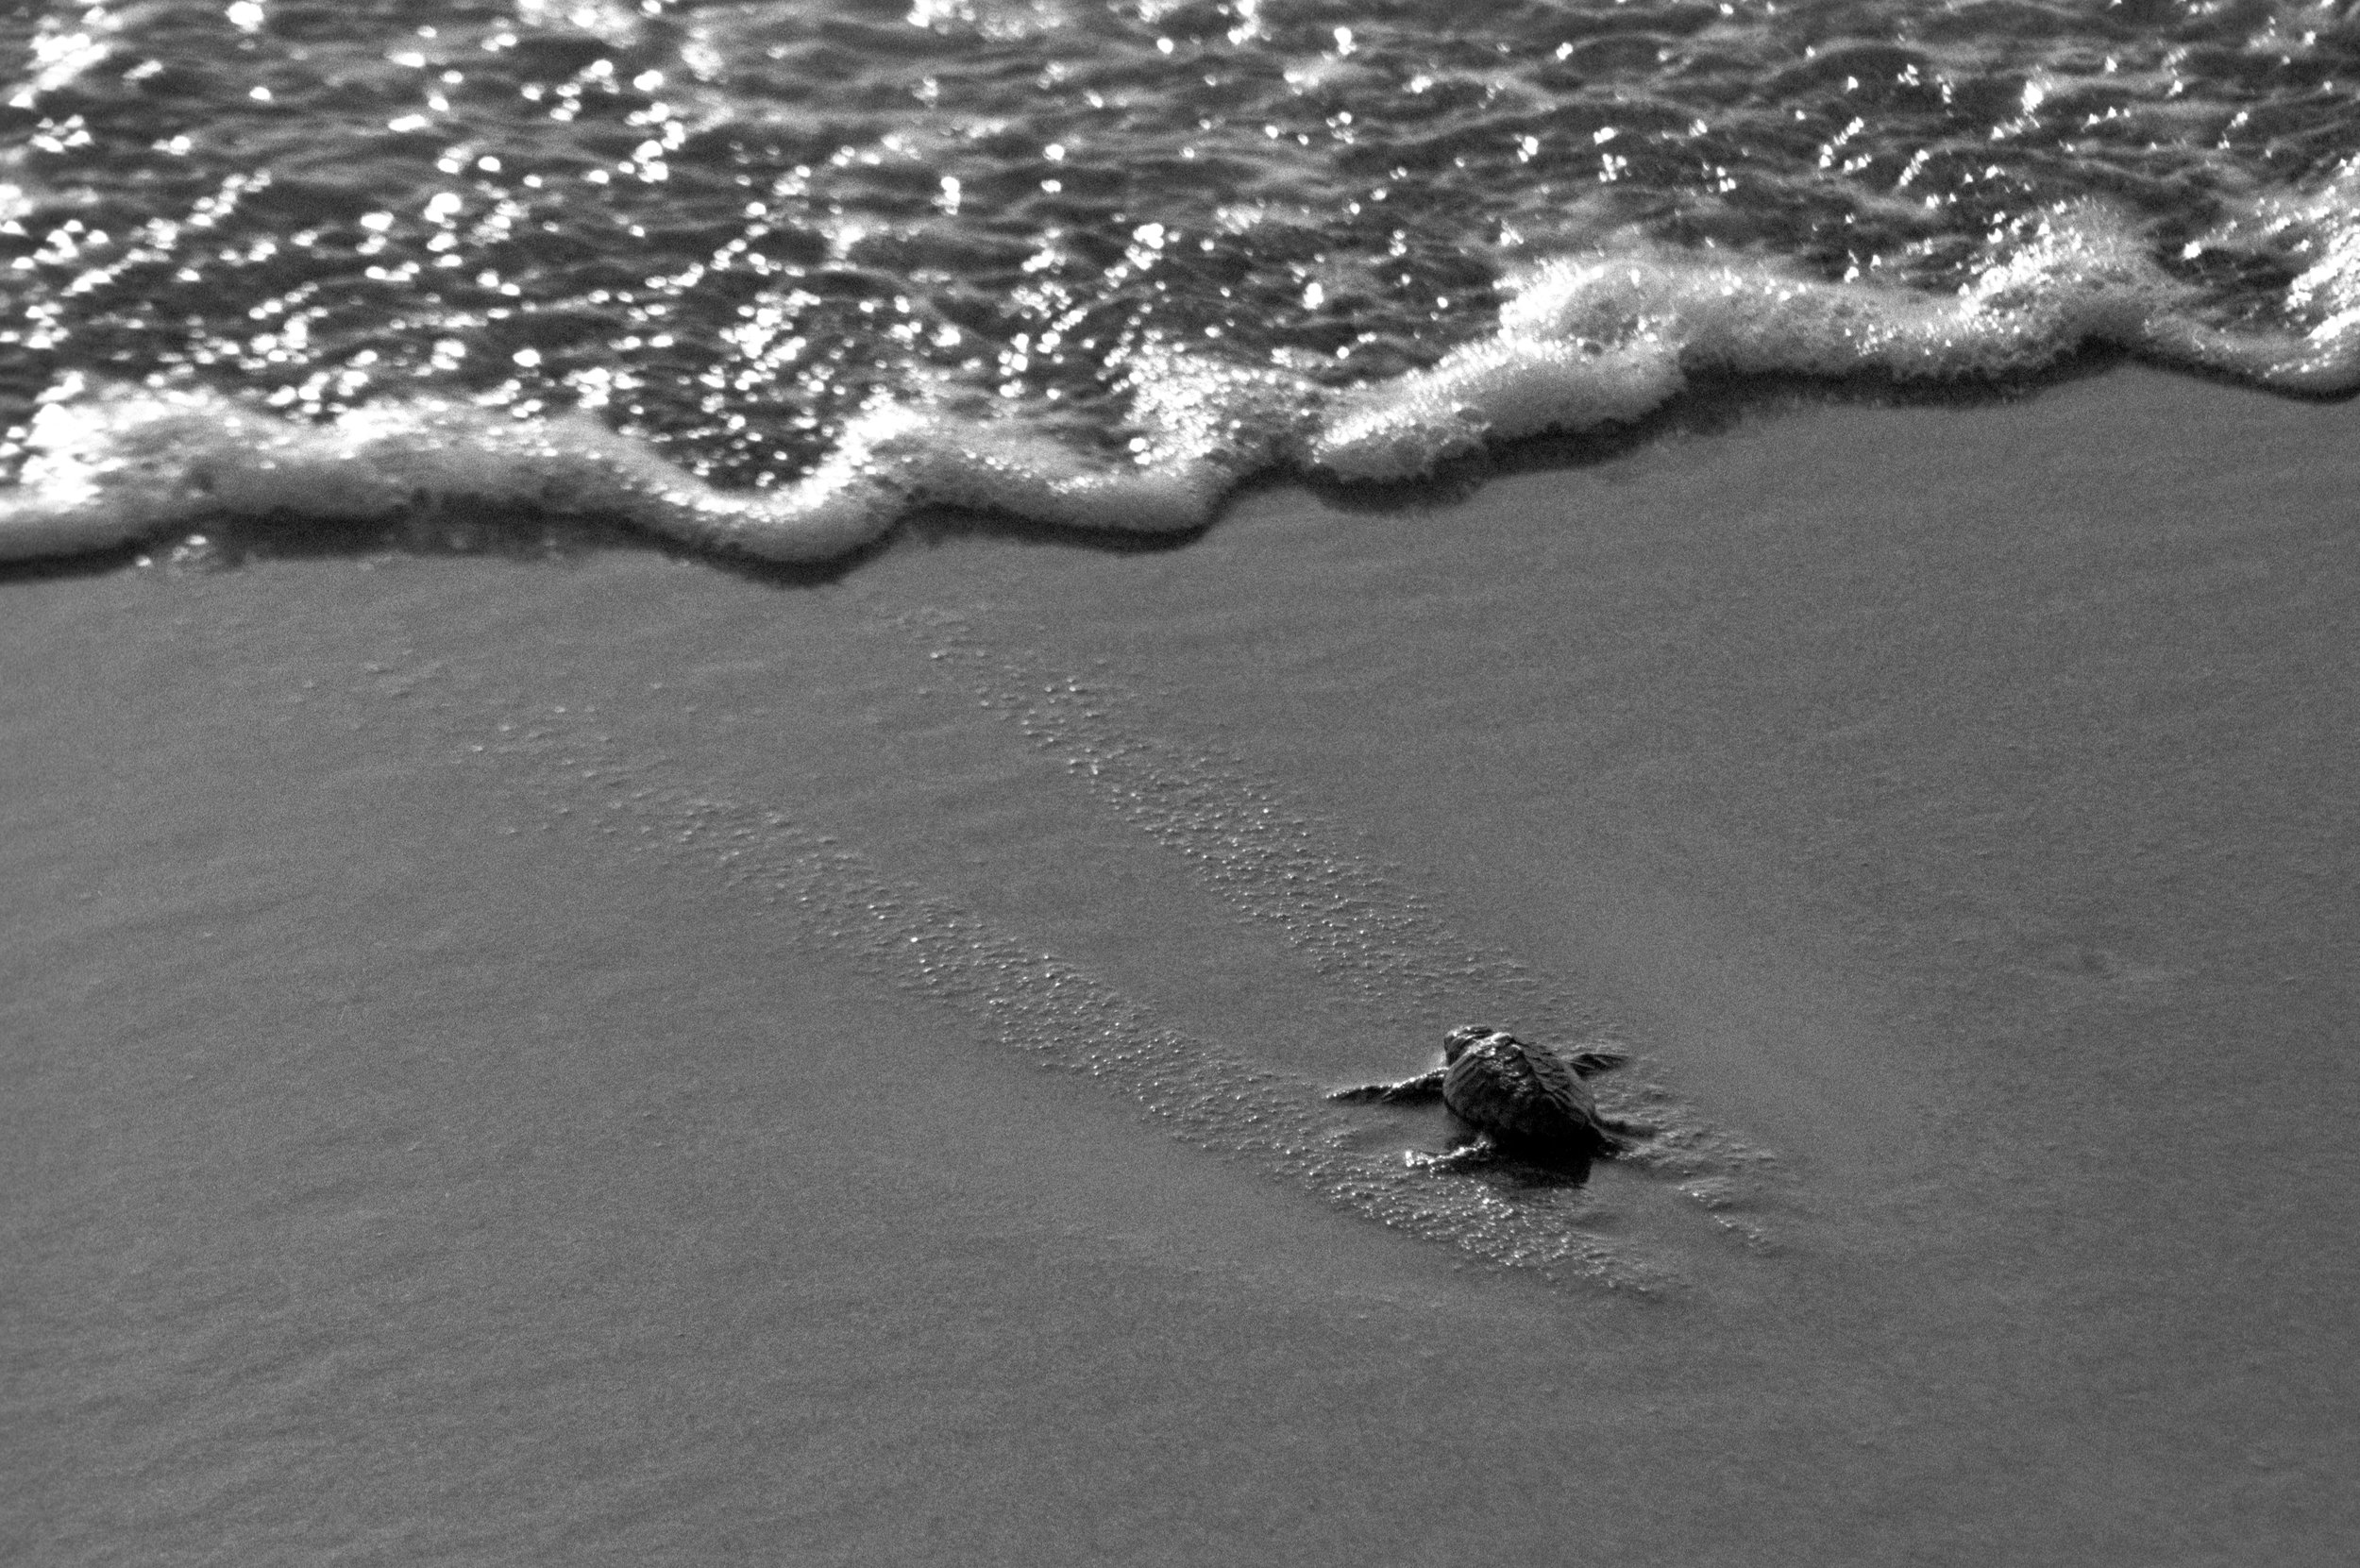 Starfish_Turtle3_BW.jpg